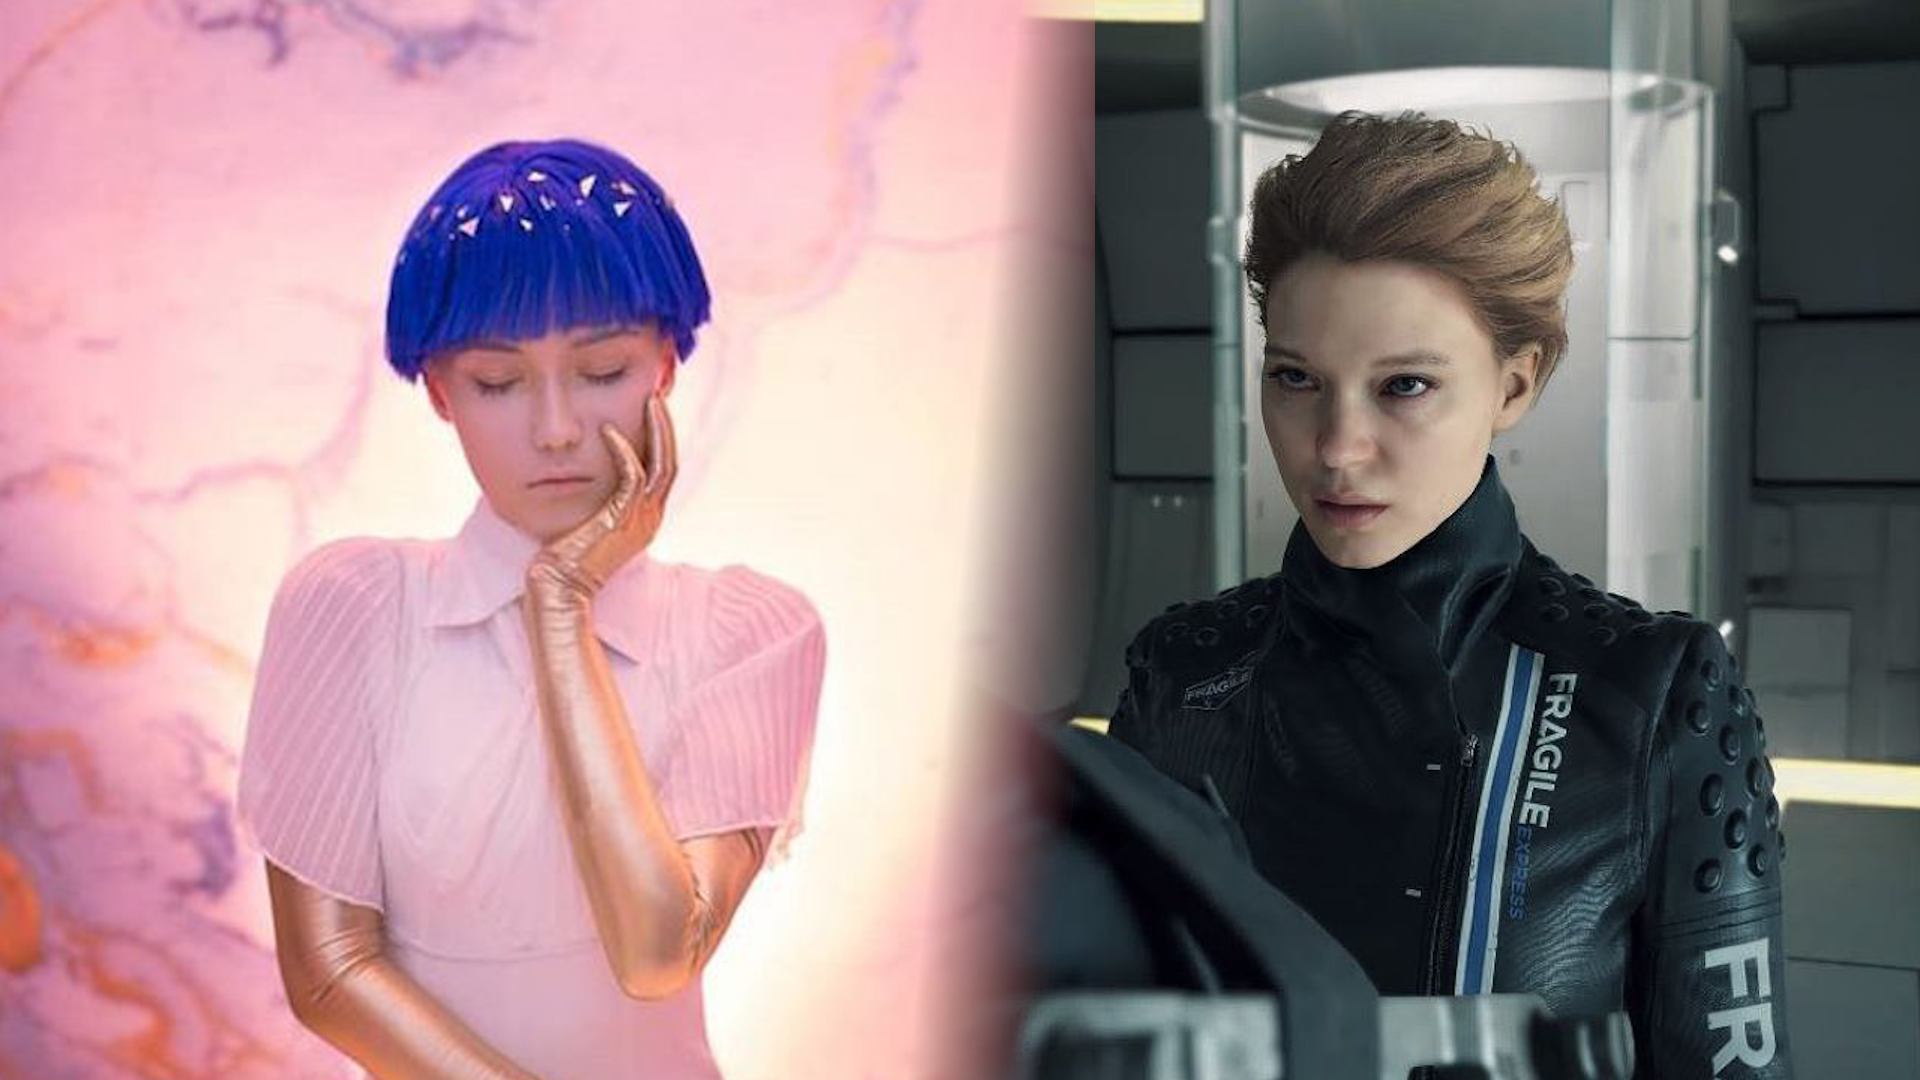 Death Stranding Cosplayer Perfects Uncanny Valley As Fragile Dexerto Fragile of the ps4 game death stranding. death stranding cosplayer perfects